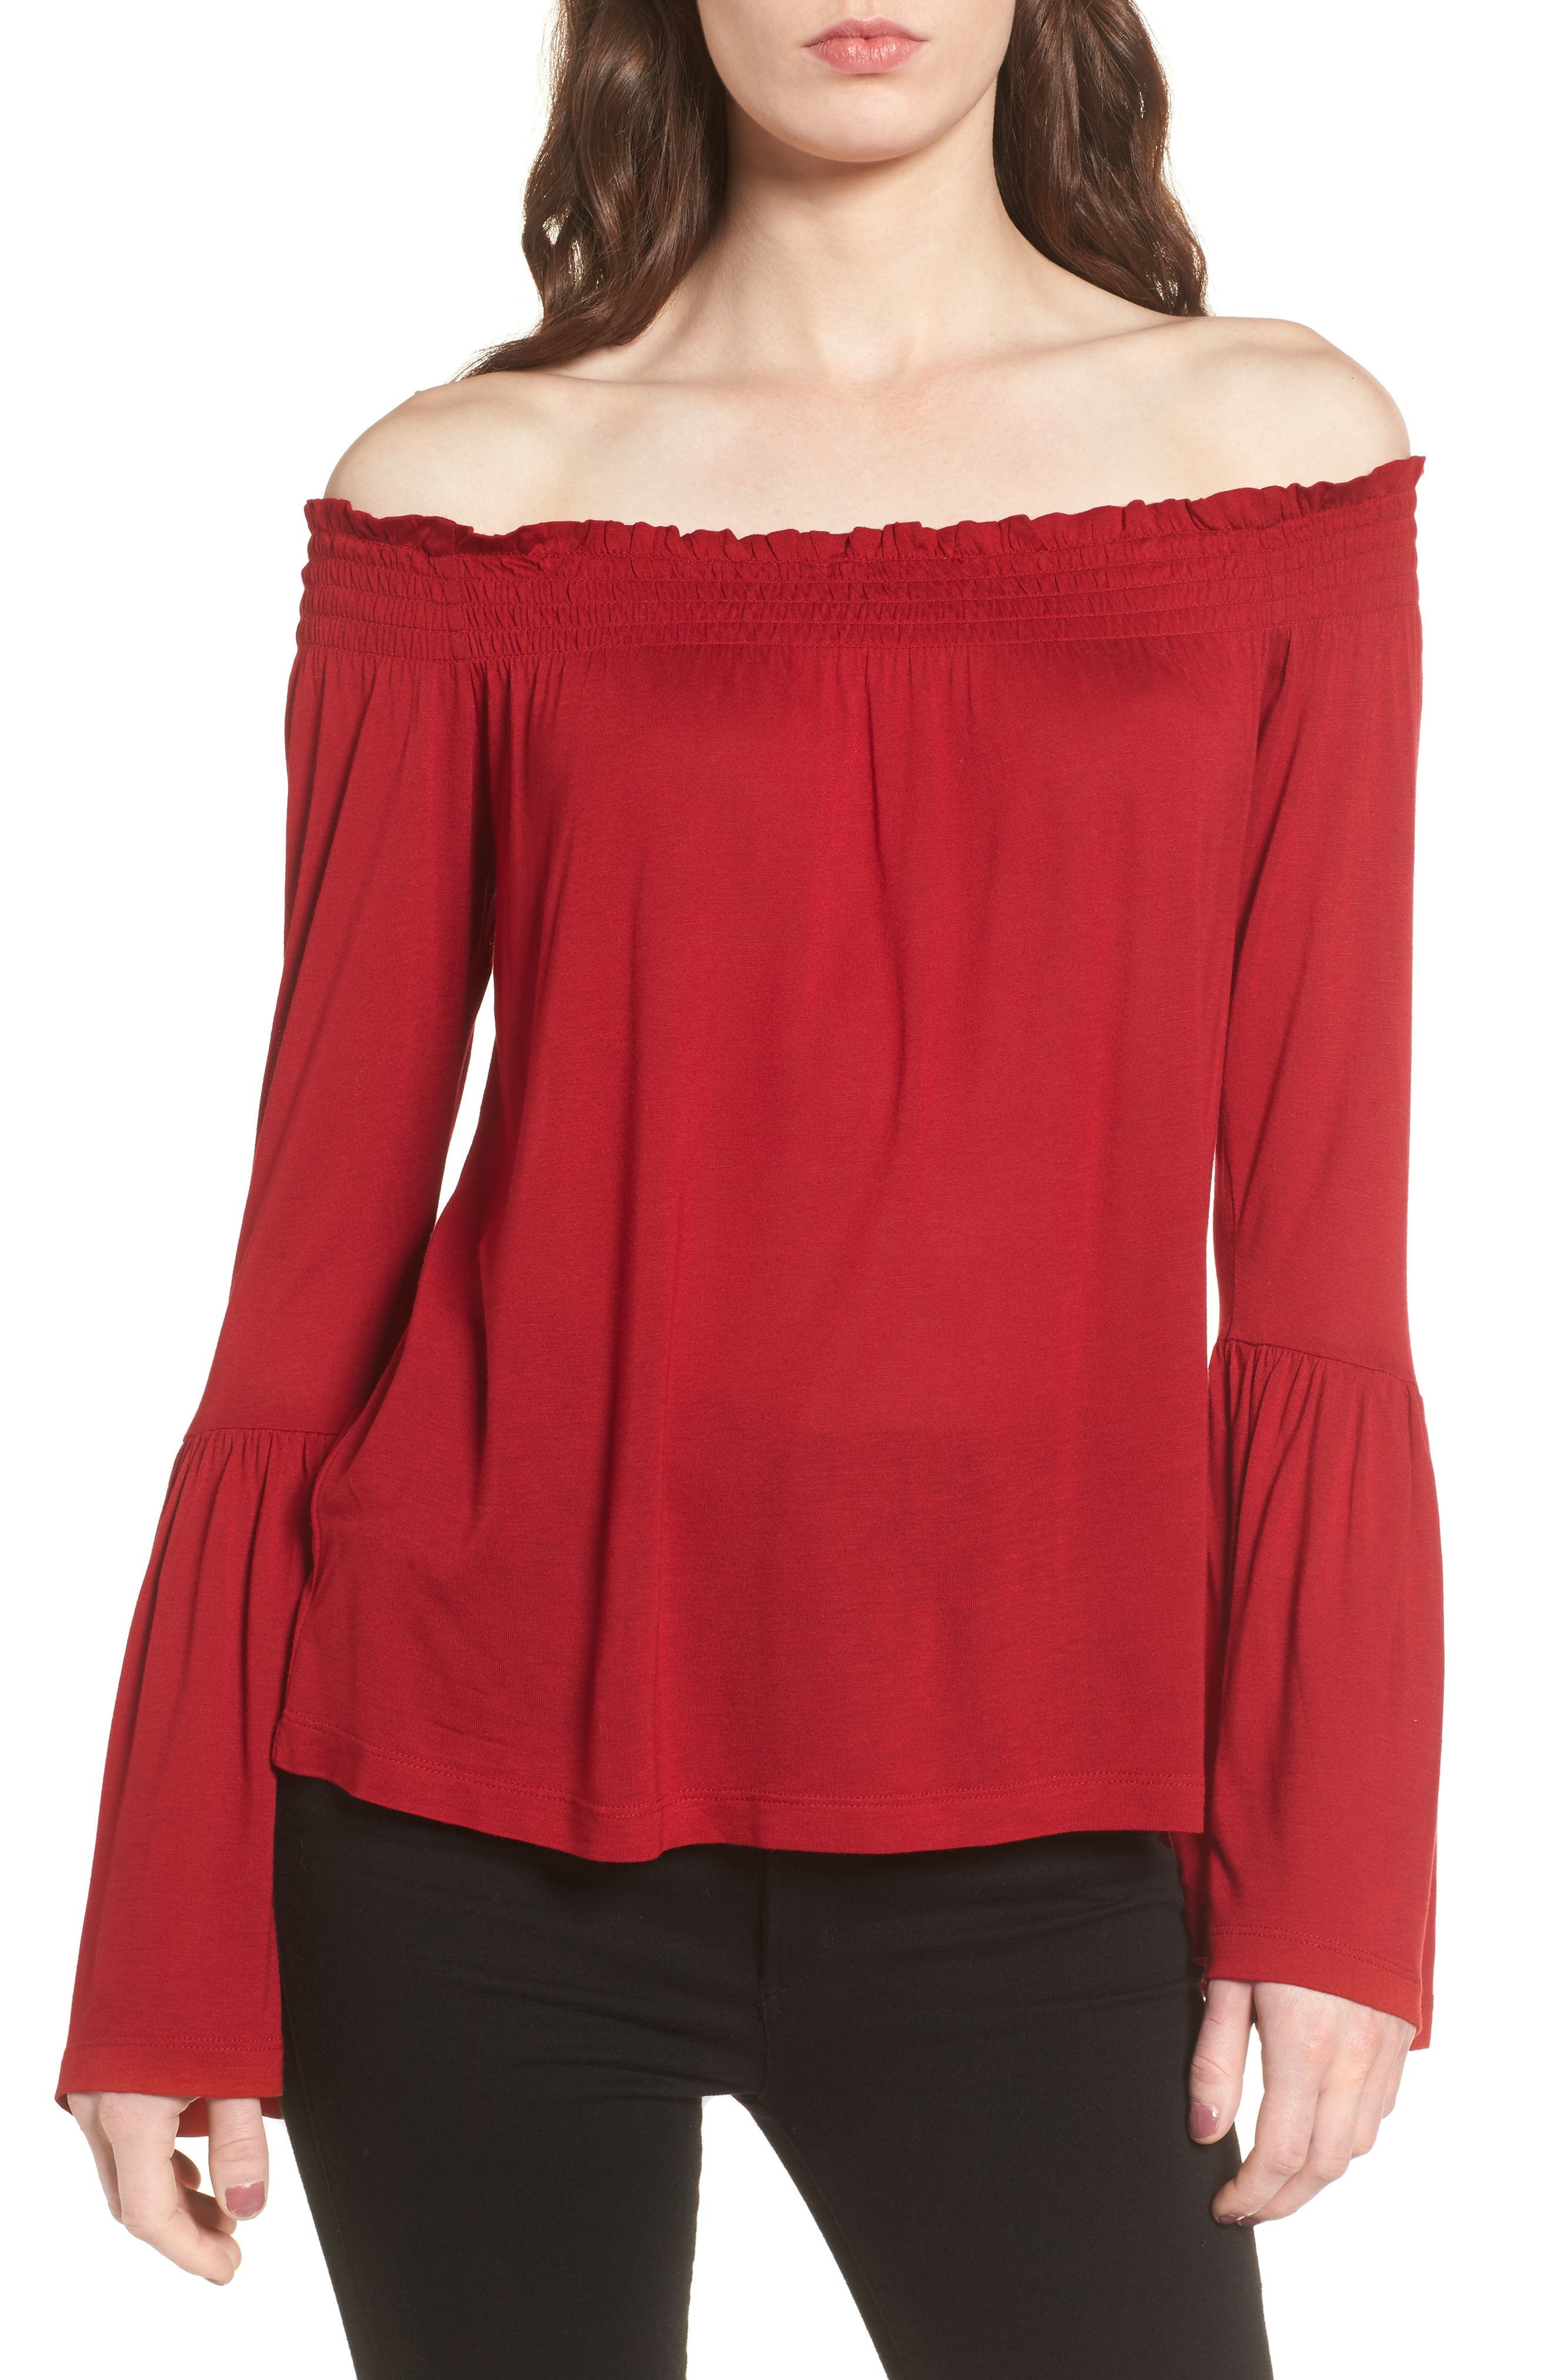 Luck Off the Shoulder Top,                         Main,                         color, 643